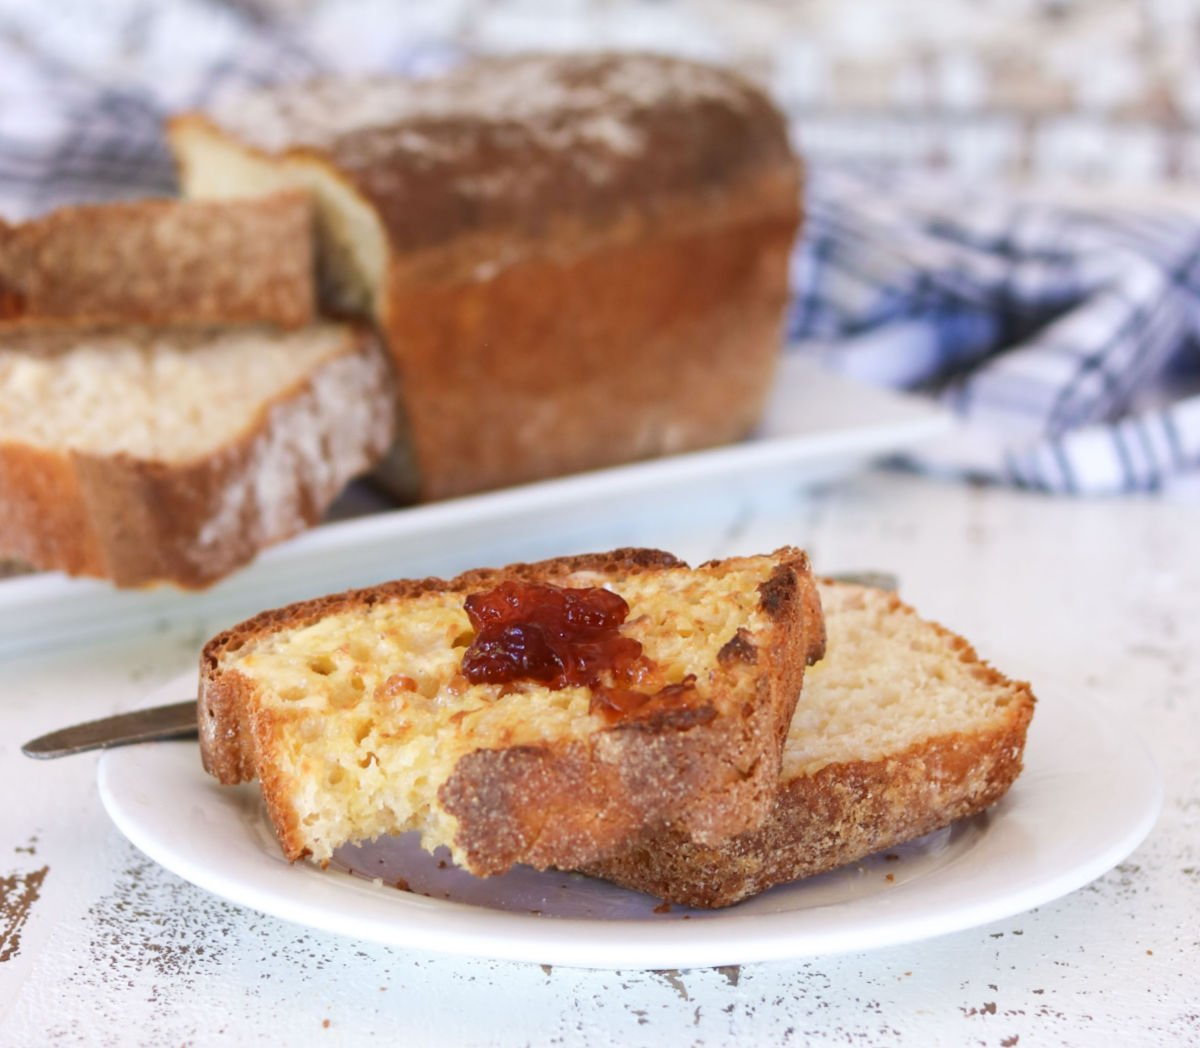 A slice of toasted english muffin bread with jam.